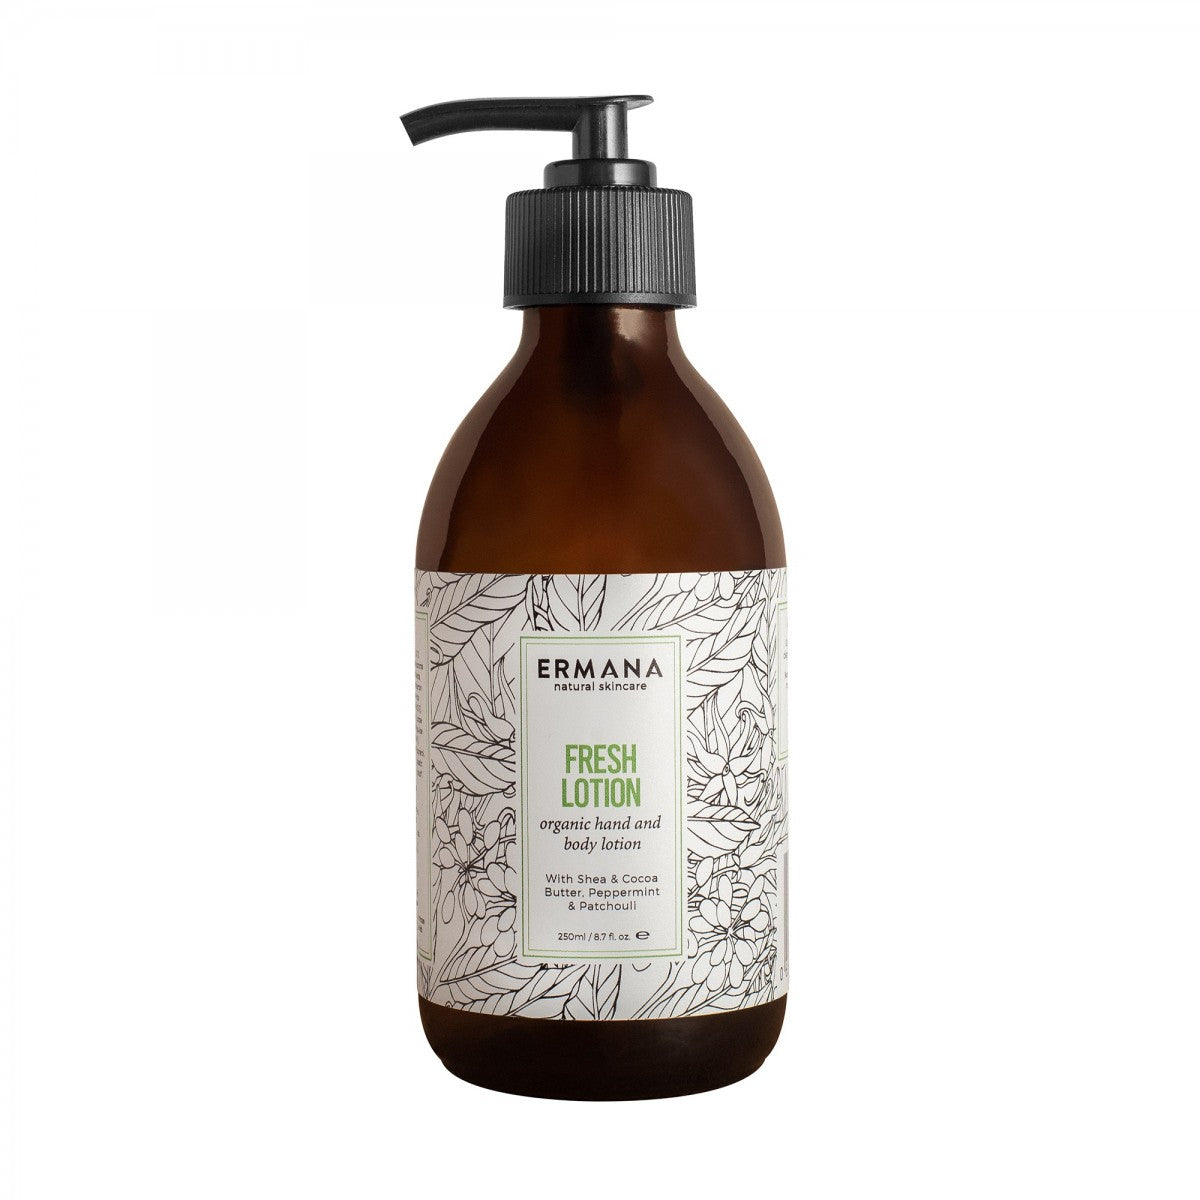 Fresh Organic Hand & Body Lotion 250ml - Ermana Natural Skincare